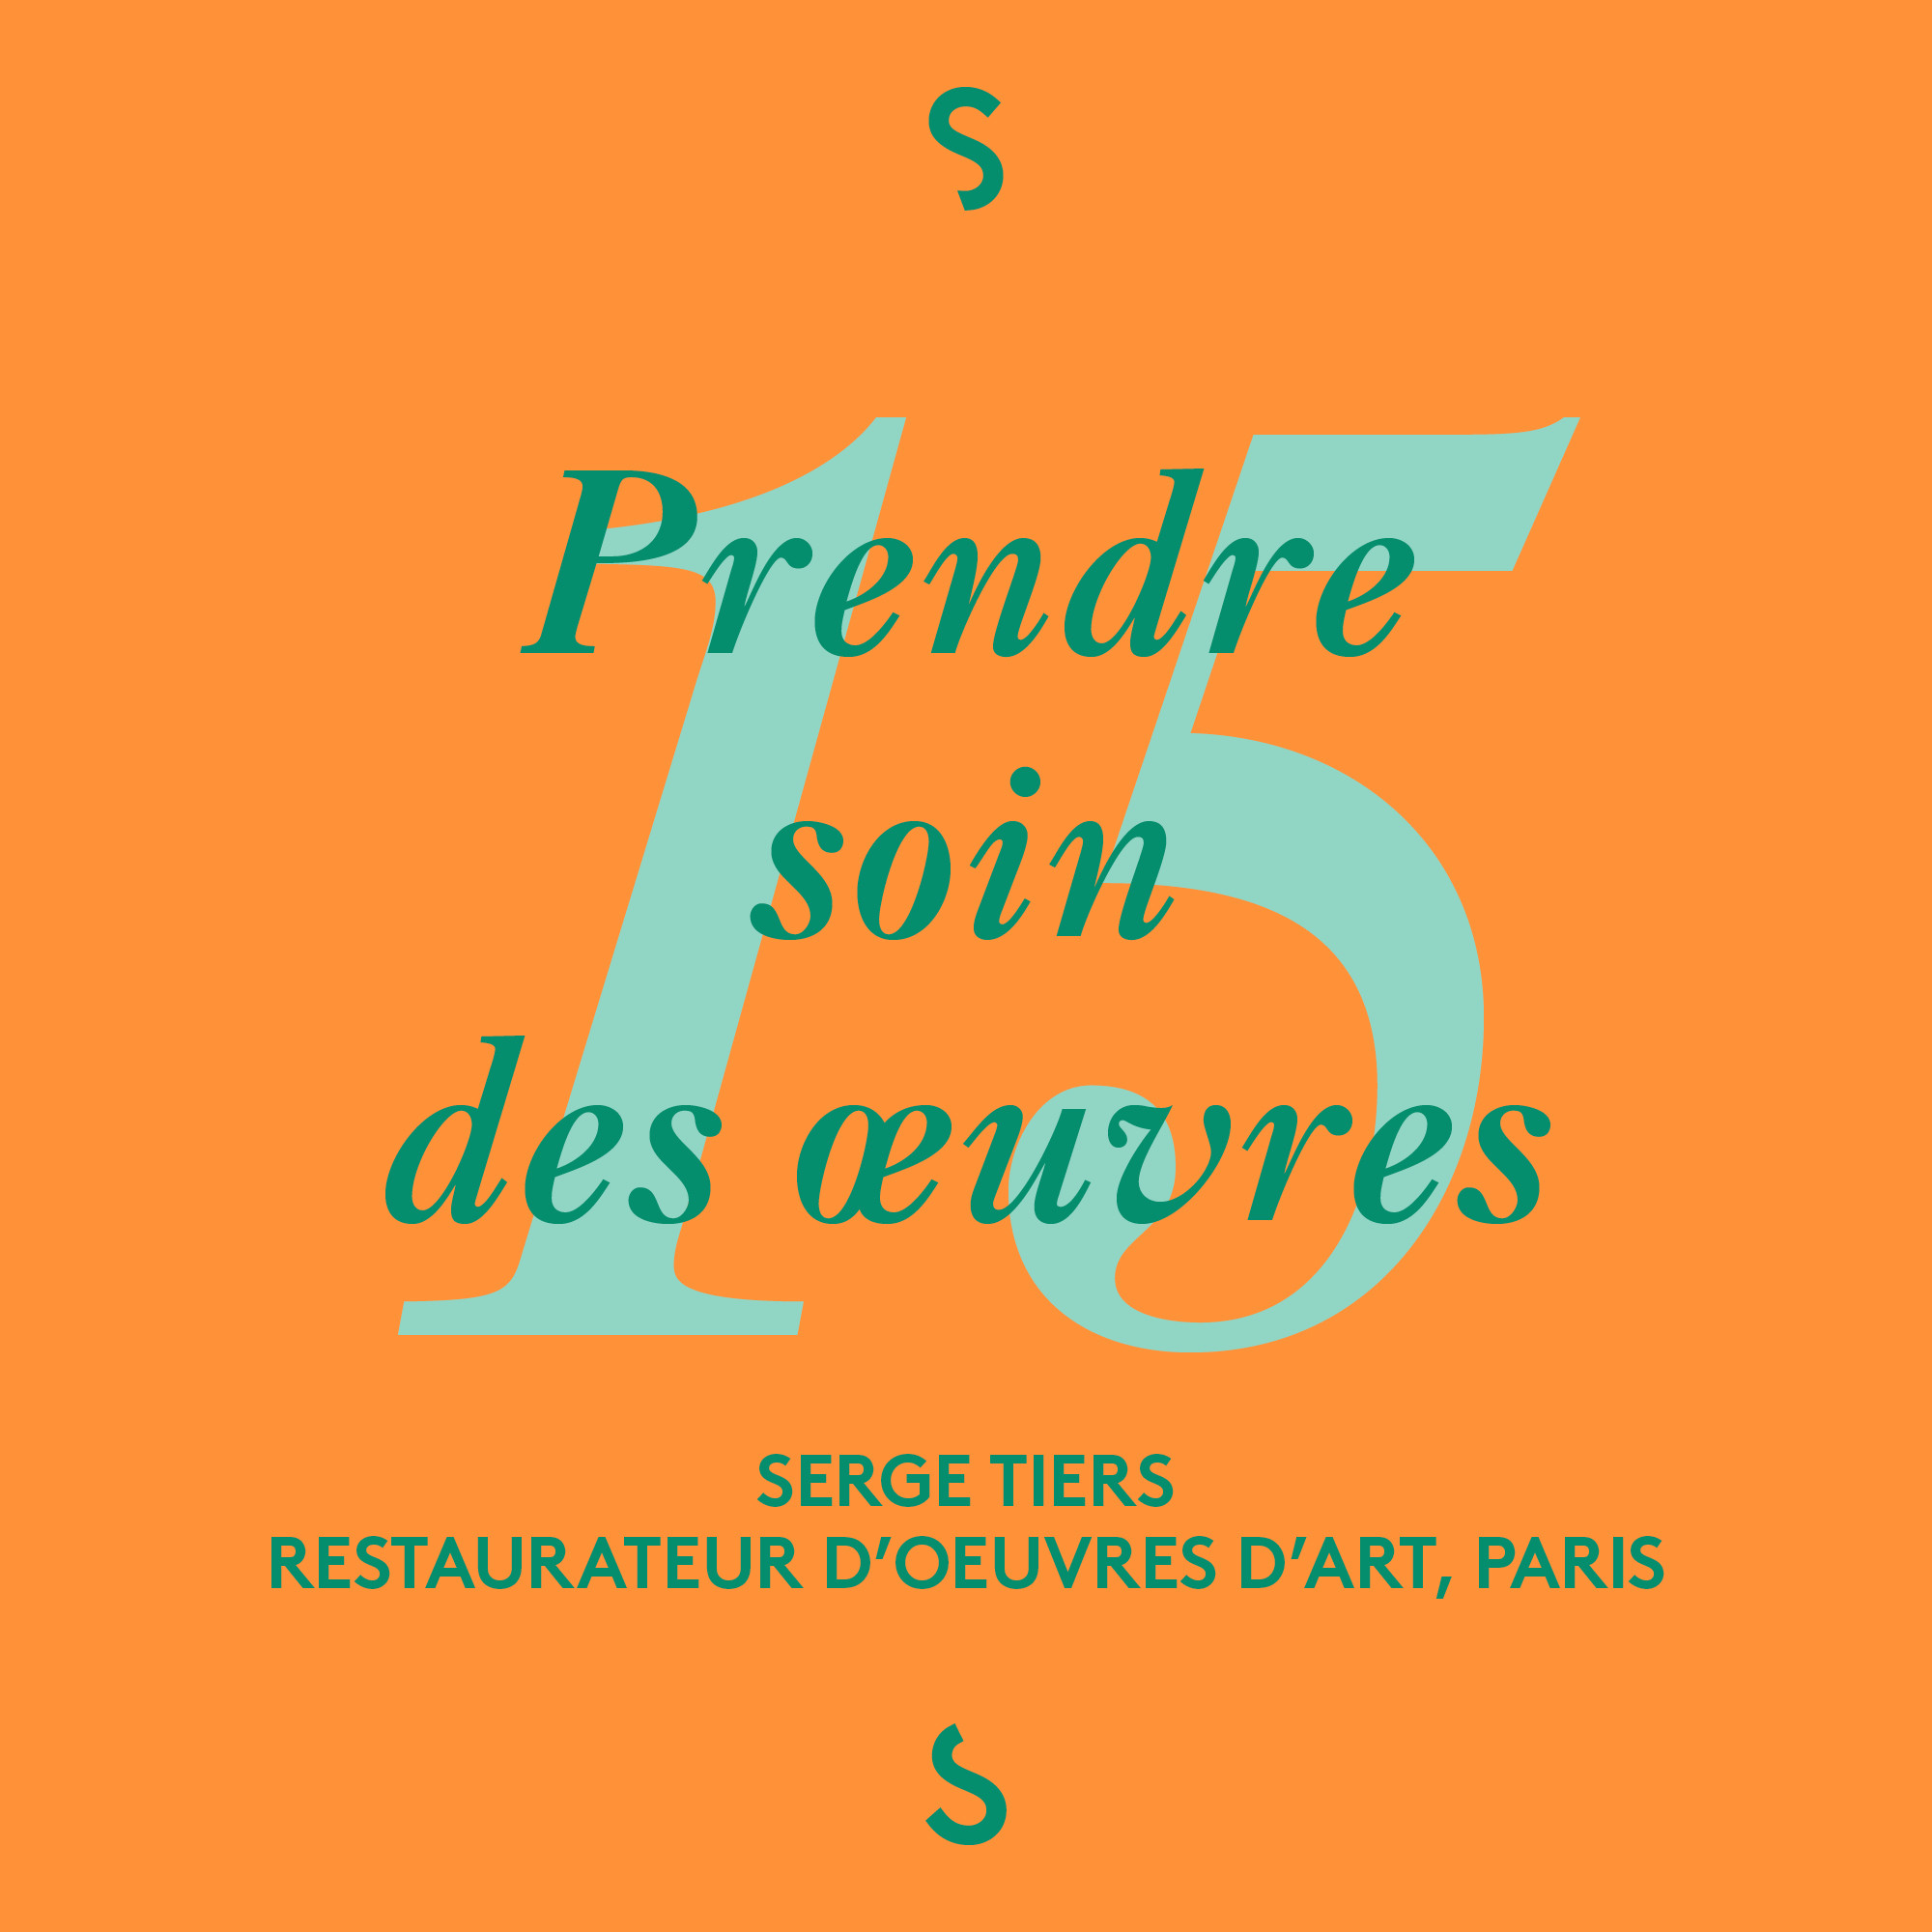 Prendre soin des oeuvres